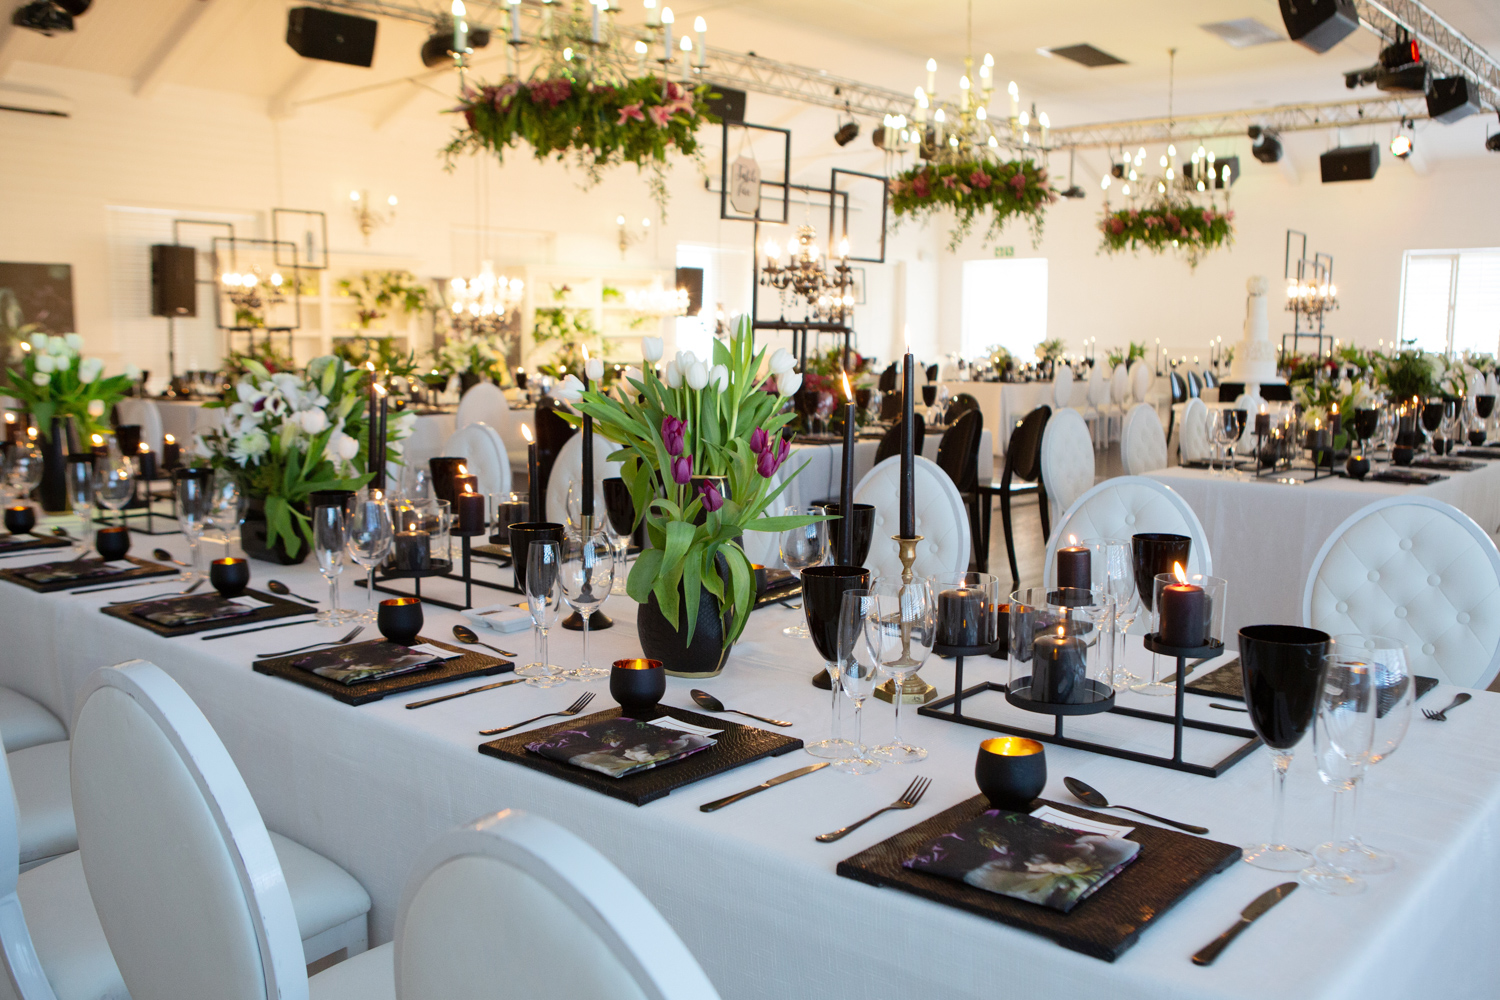 an image taken by Vividblue of the decor of a wedding at Val De Vie, black vases with purple and white floral arraignment white table cloths and black chairs